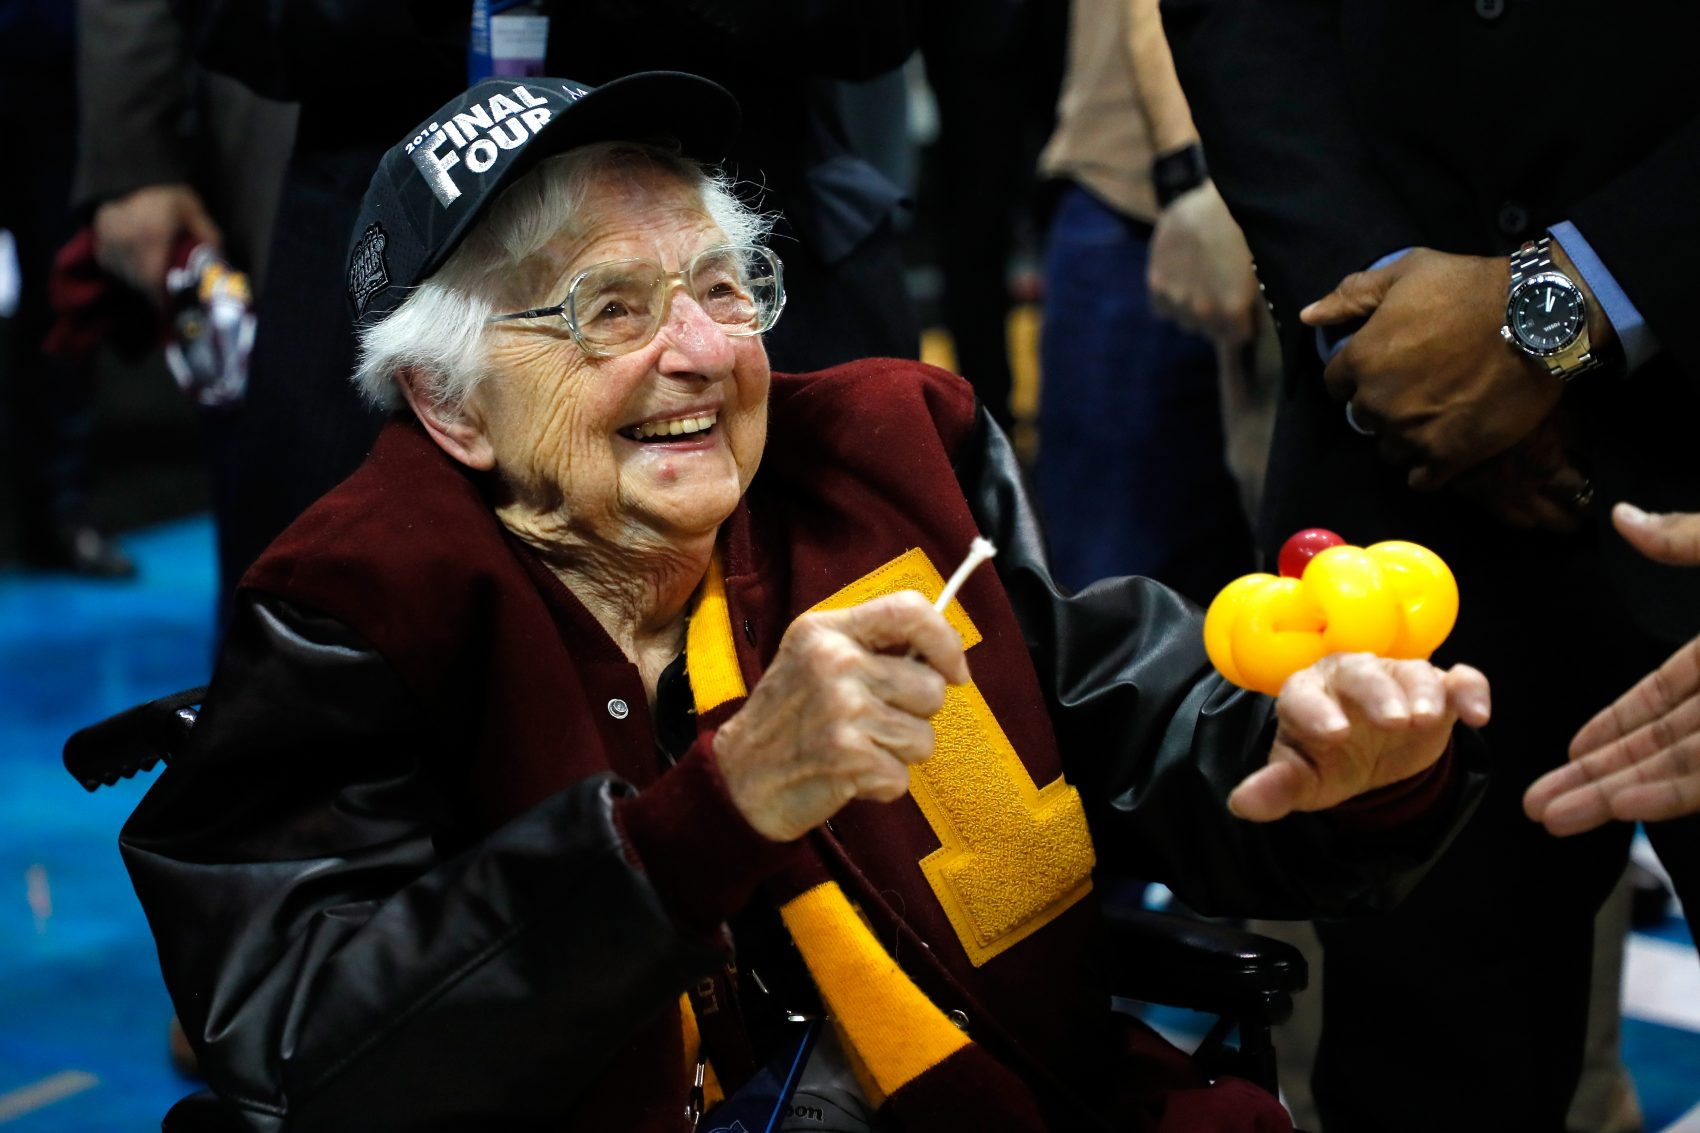 Sister Jean Dolores Schmidt celebrates with the Loyola Ramblers after defeating the Kansas State Wildcats during the 2018 NCAA men's basketball tournament at Philips Arena on March 24, 2018 in Atlanta. (Kevin C. Cox/Getty Images)